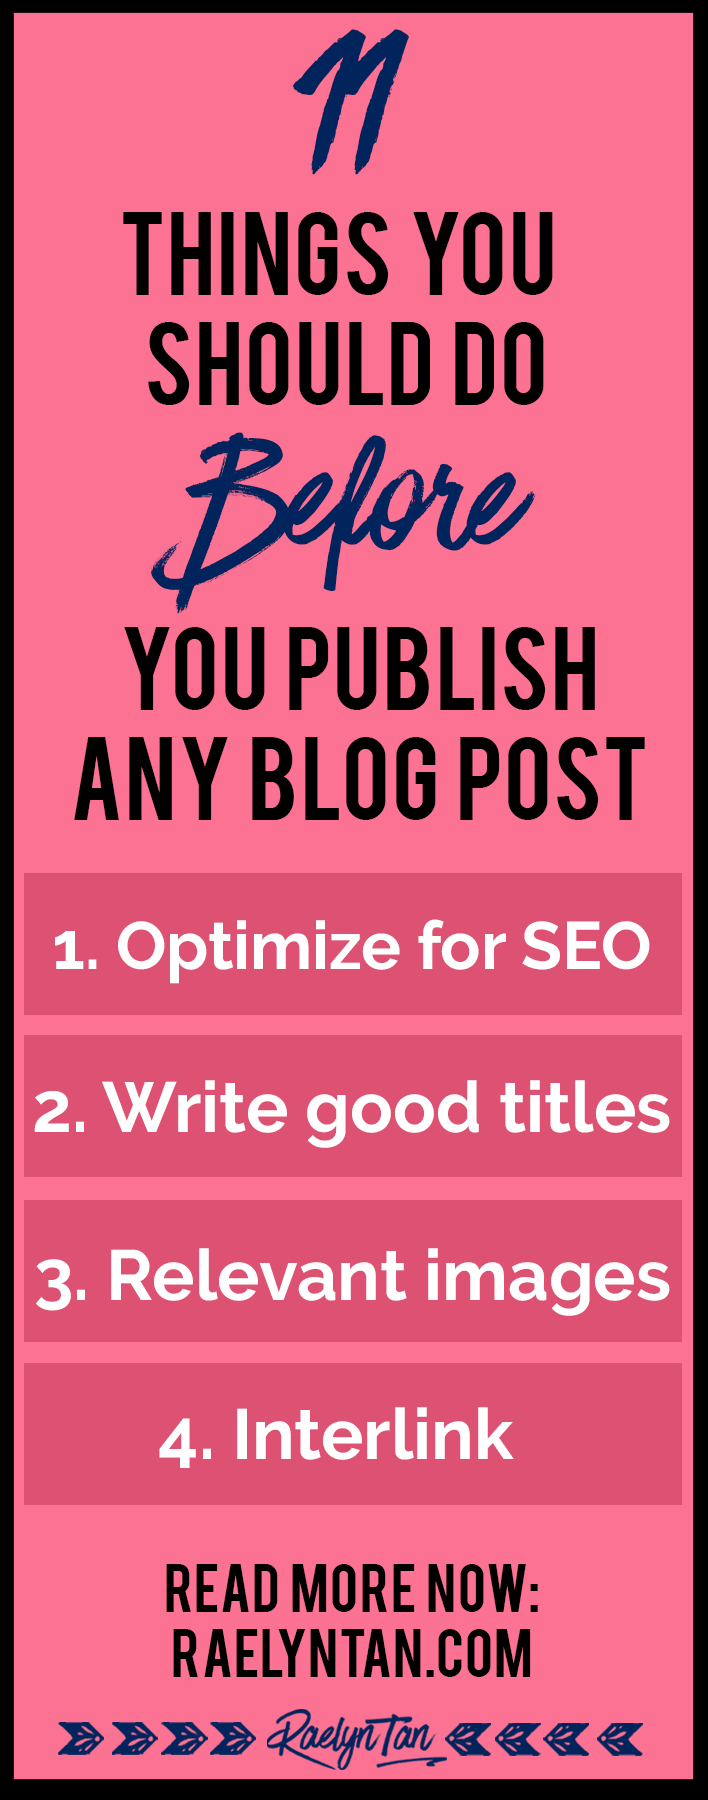 Here's 11 things every blogger should do before publishing a blog post. These tips for beginners will help you write good blog posts that are super shareable. Use this article as a checklist before publishing!